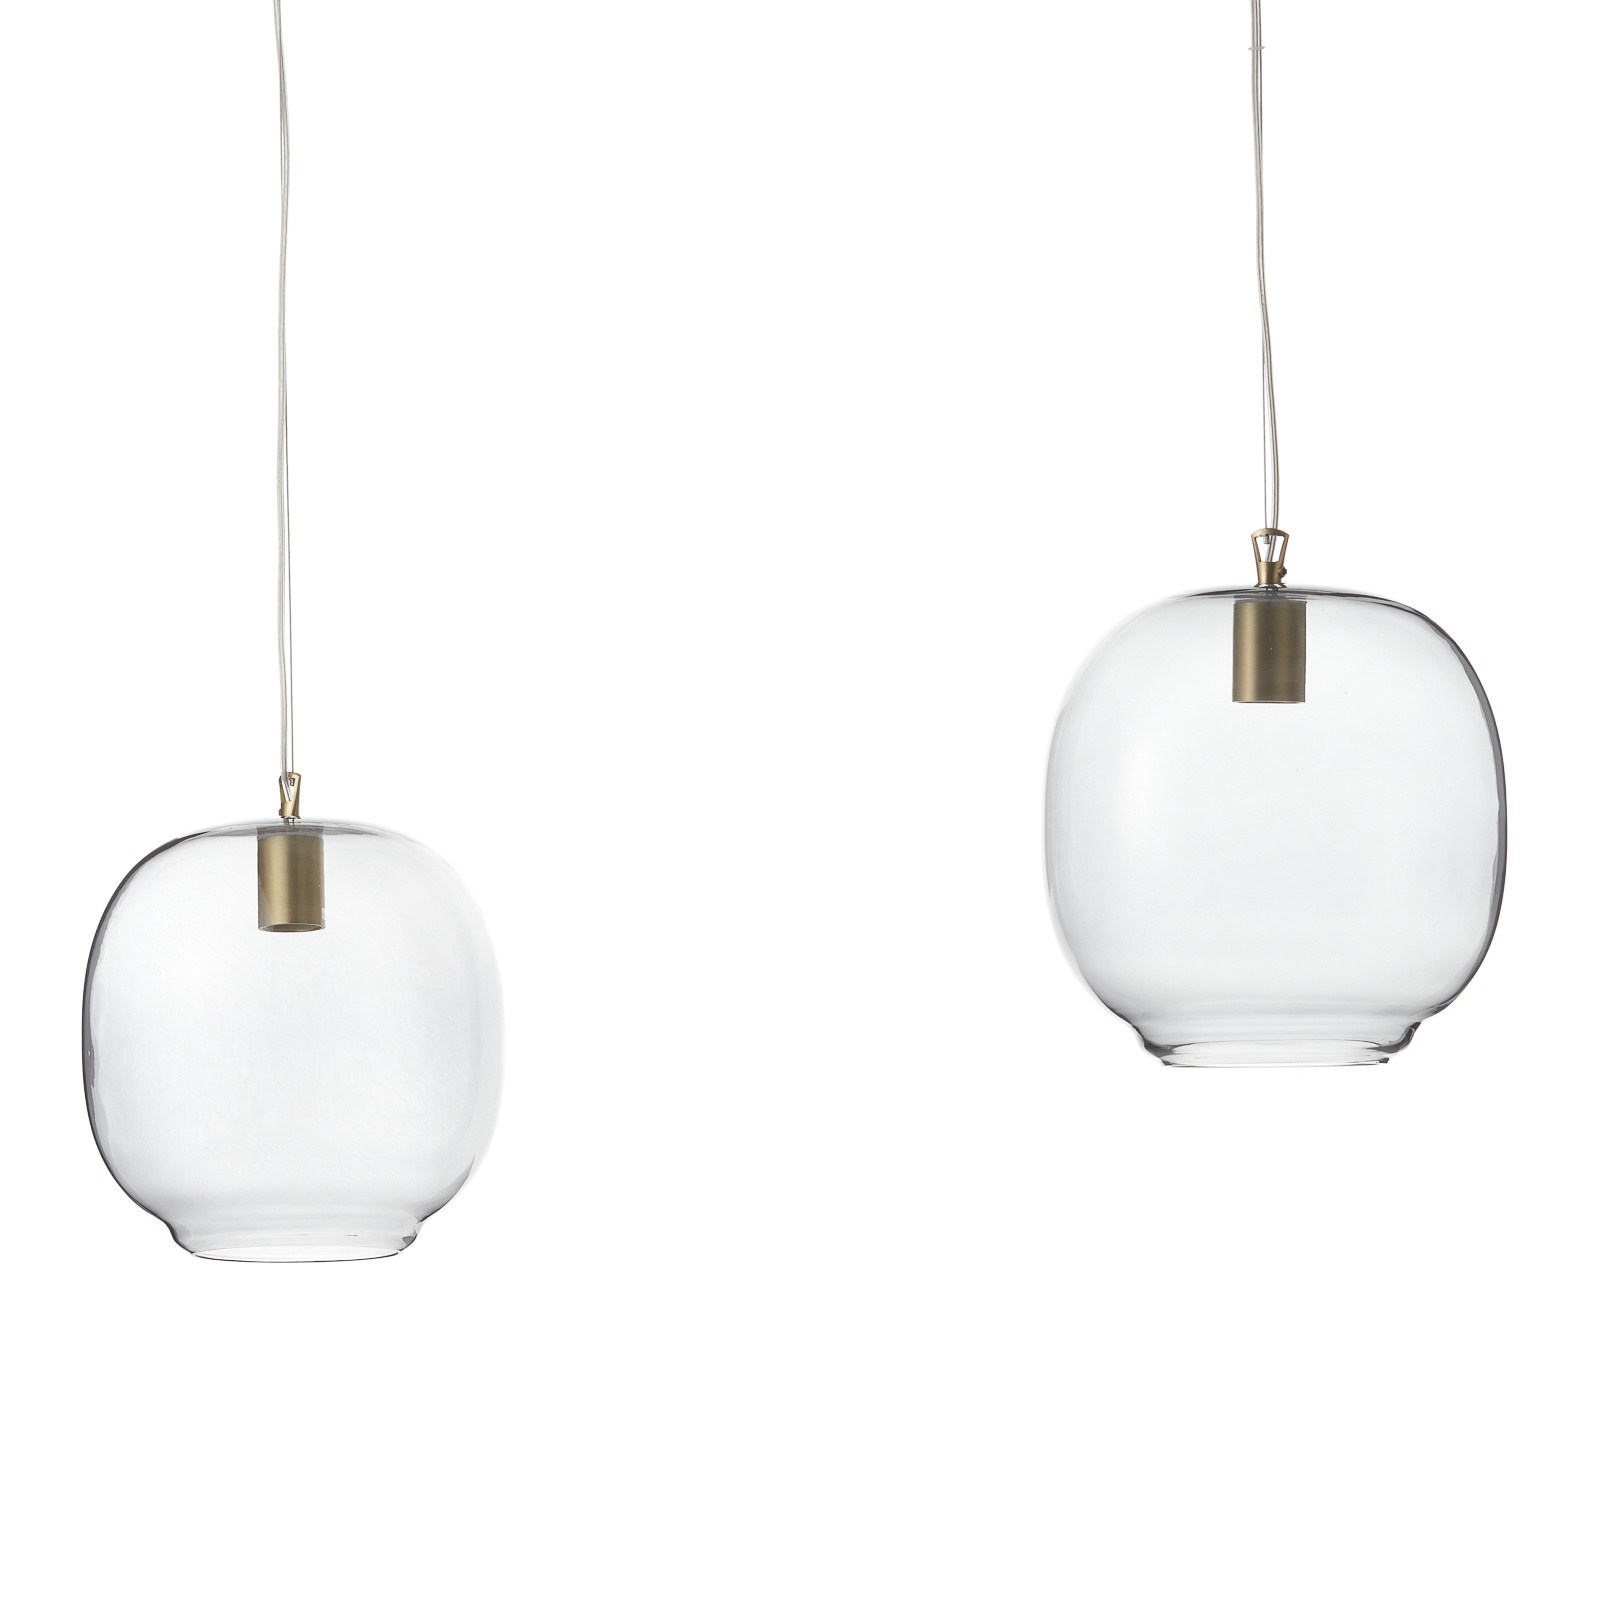 Hanglamp Cochi, 2-lamps